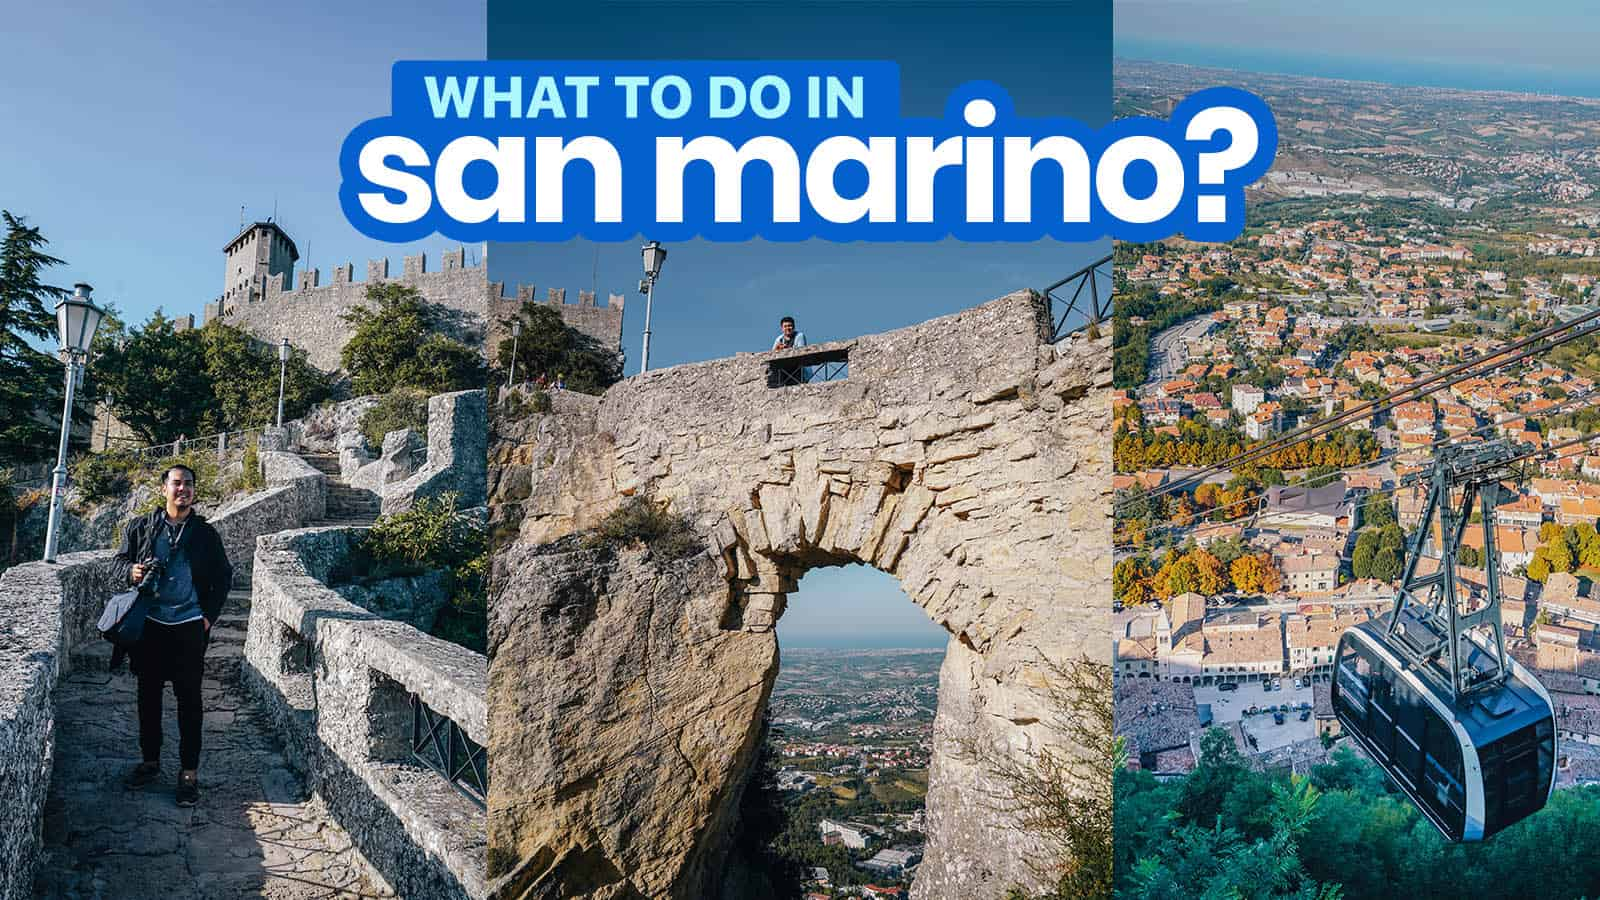 SAN MARINO DAY TRIP ITINERARY: 20 Things to Do & Walking Route